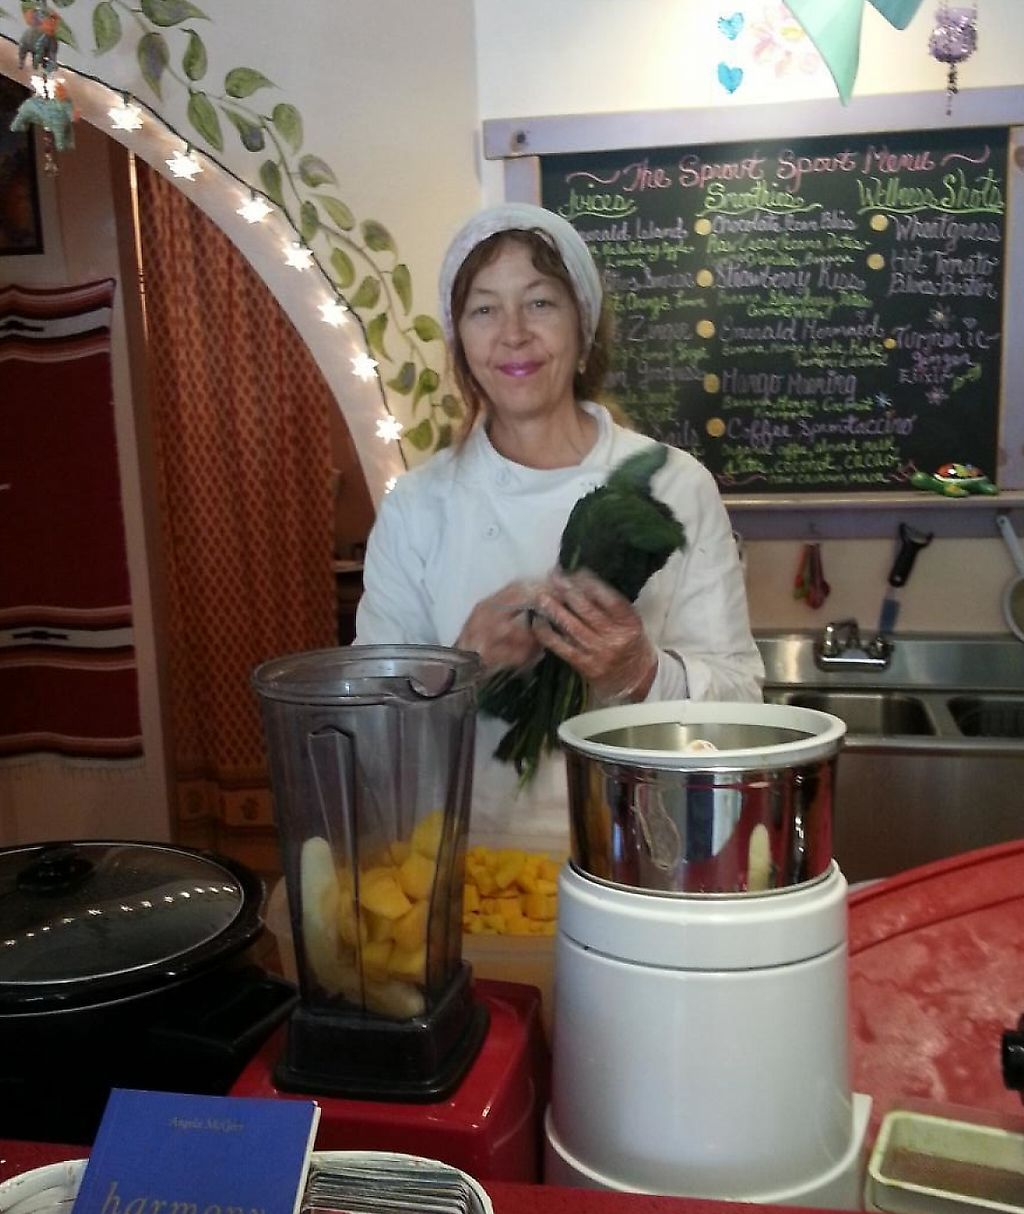 """Photo of The Sanibel Sprout  by <a href=""""/members/profile/SkipStein"""">SkipStein</a> <br/>Niki, our accommodating hostess making a wonderful and FRESH smoothie with lots of kale! <br/> March 6, 2014  - <a href='/contact/abuse/image/37754/197499'>Report</a>"""